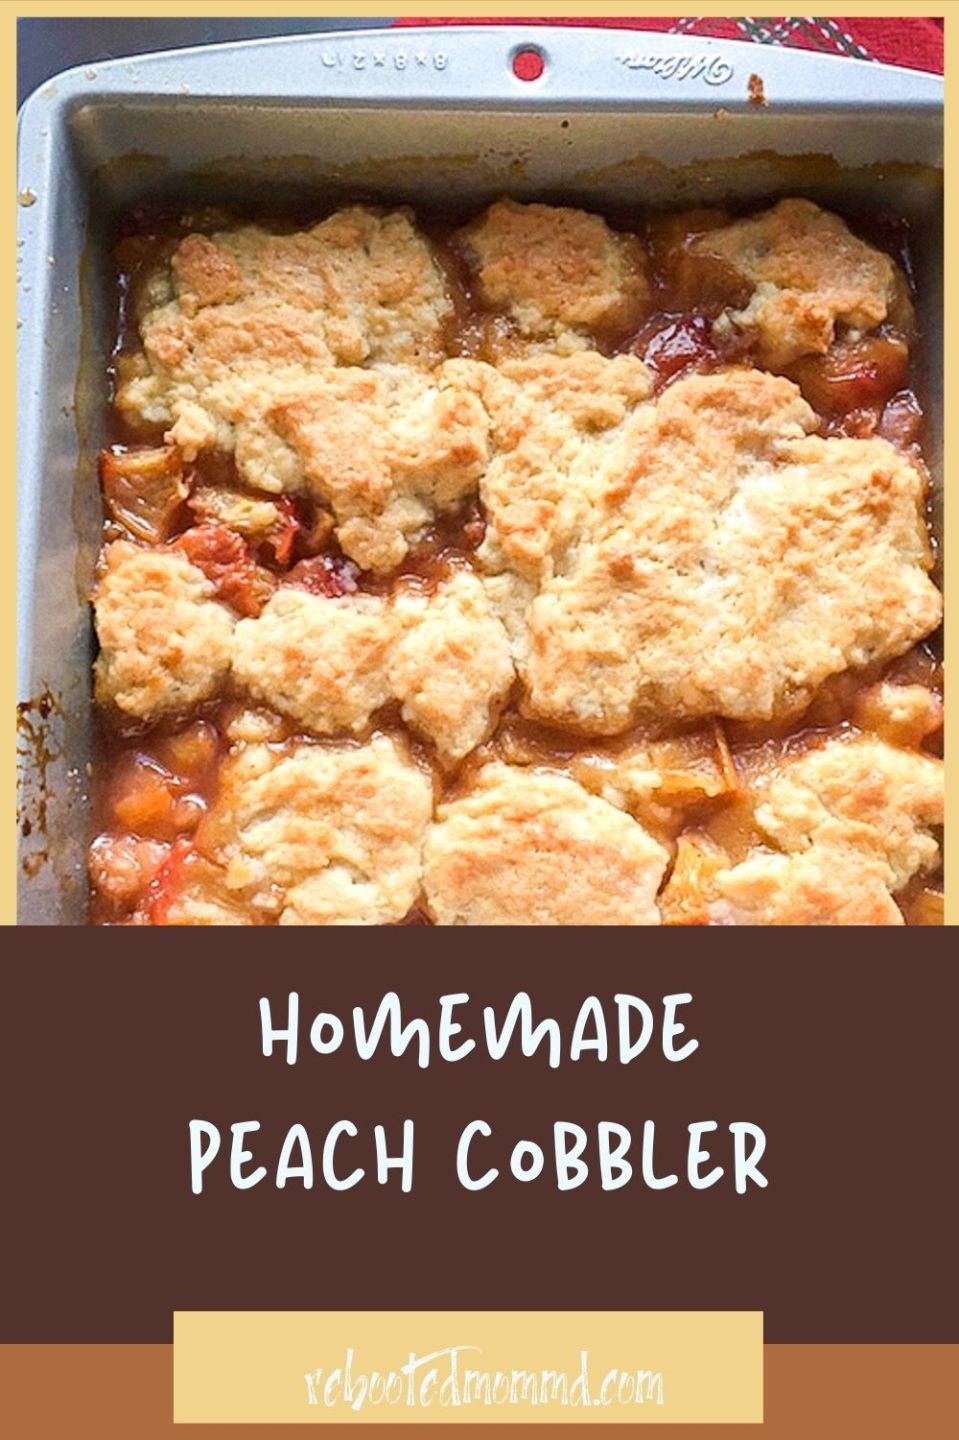 National Peach Cobbler Day